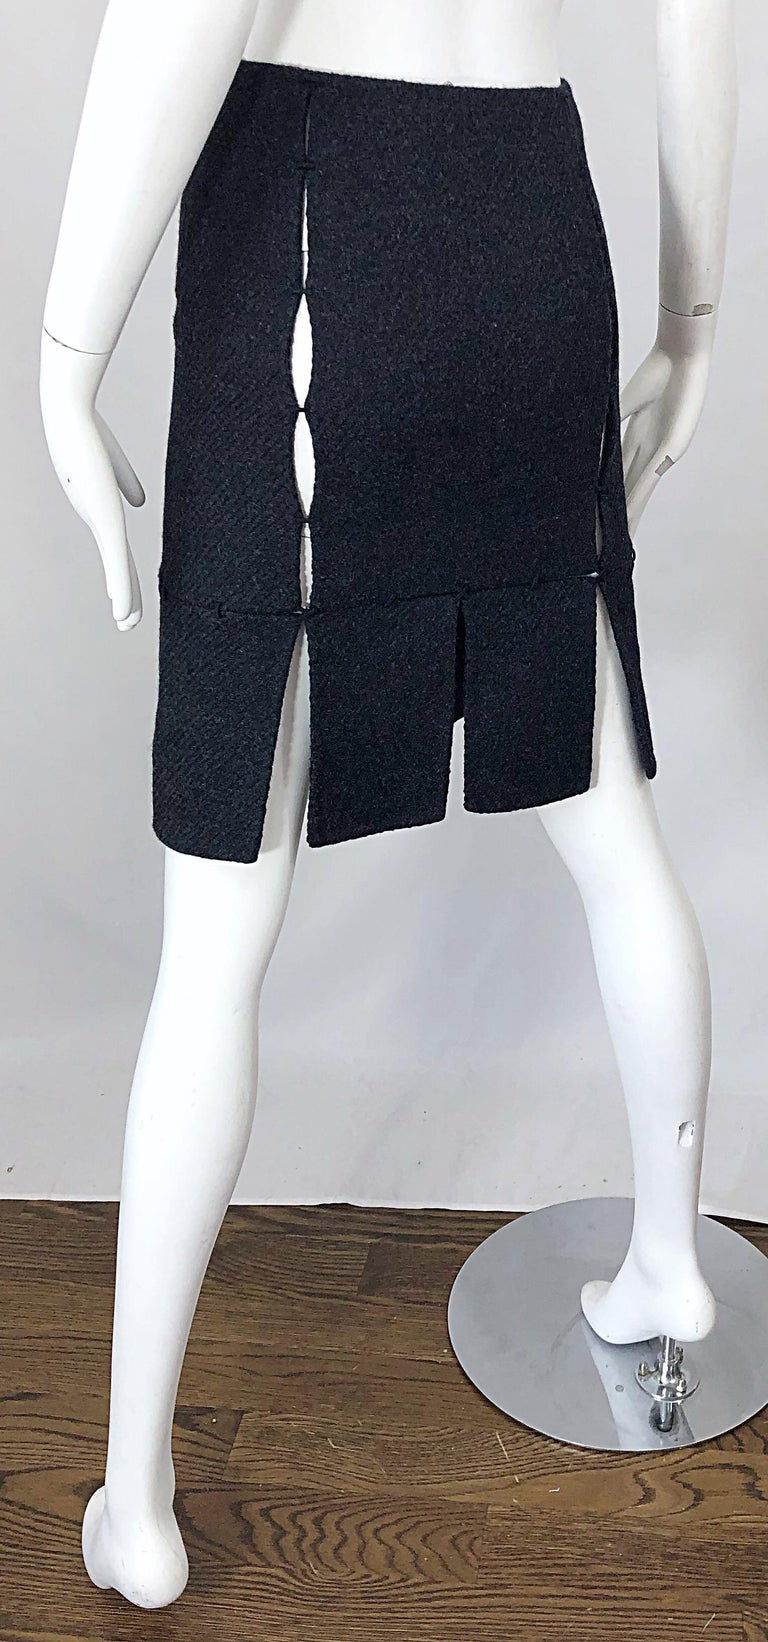 1990s Prada Charcoal Grey Cut - Out High Waisted Wool Vintage 90s Pencil Skirt For Sale 8